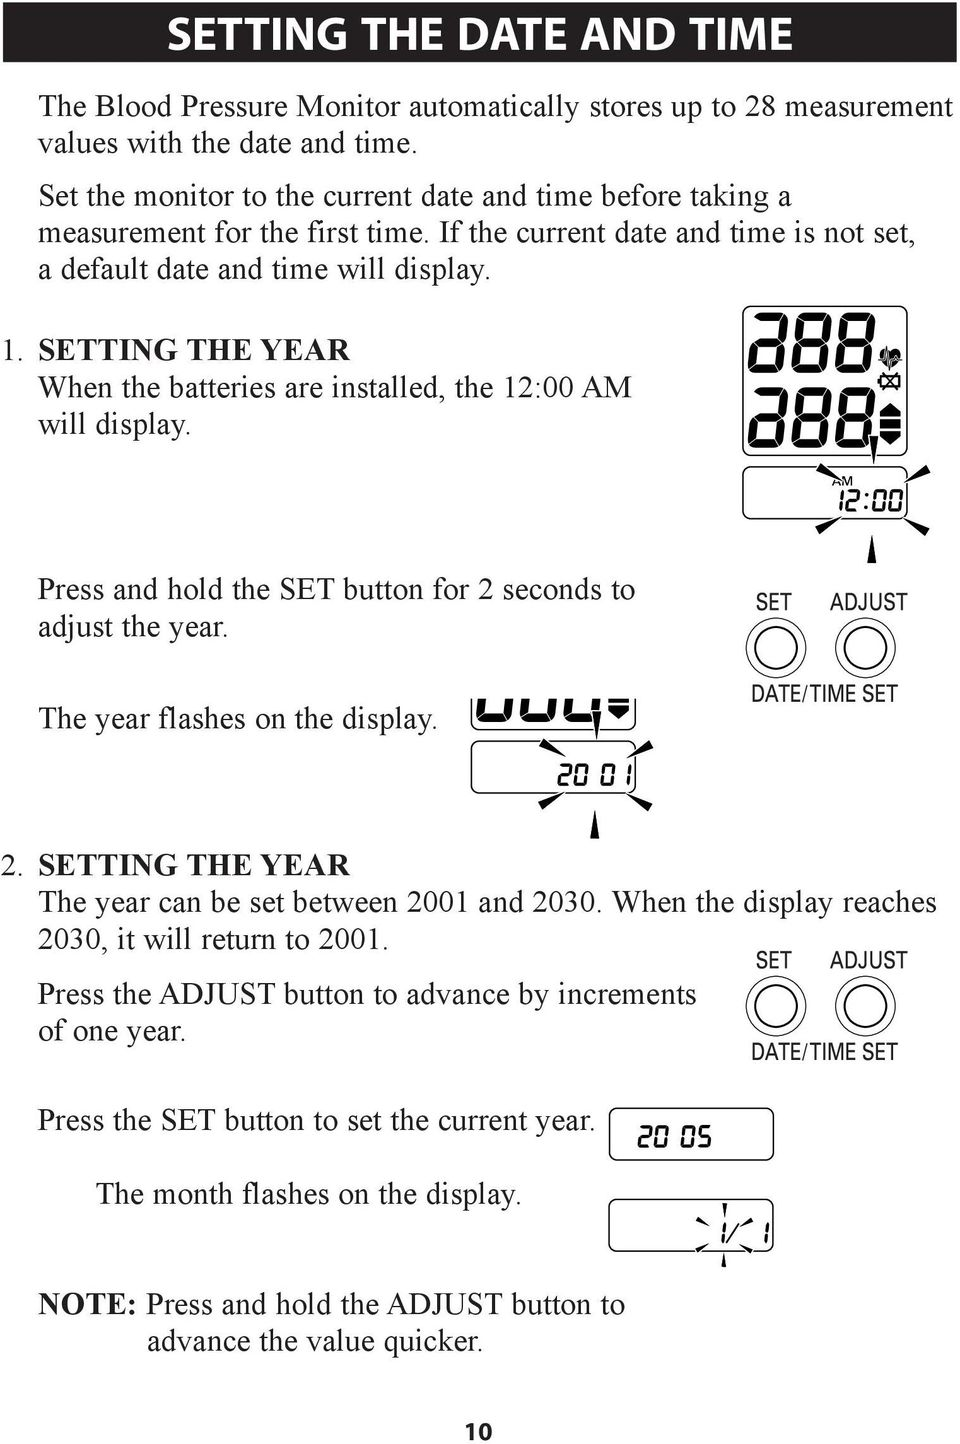 SETTING THE YEAR When the batteries are installed, the 12:00 AM will display. Press and hold the SET button for 2 seconds to adjust the year. The year flashes on the display. 2. SETTING THE YEAR The year can be set between 2001 and 2030.